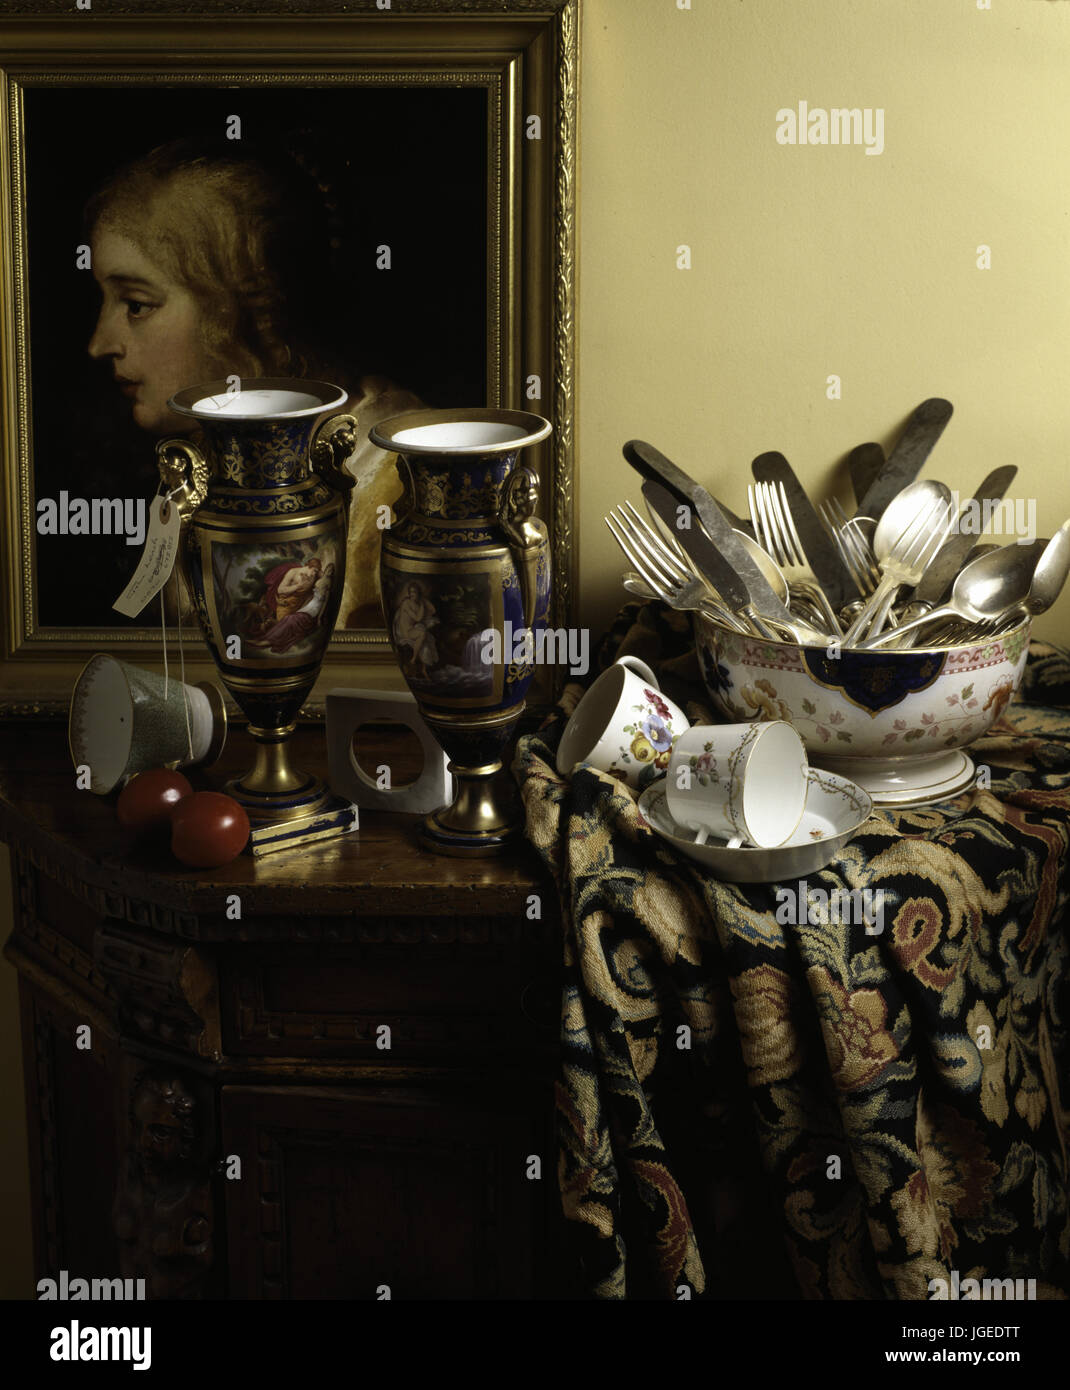 Closeup of cutlery, china and vases in saleroom lot - Stock Image